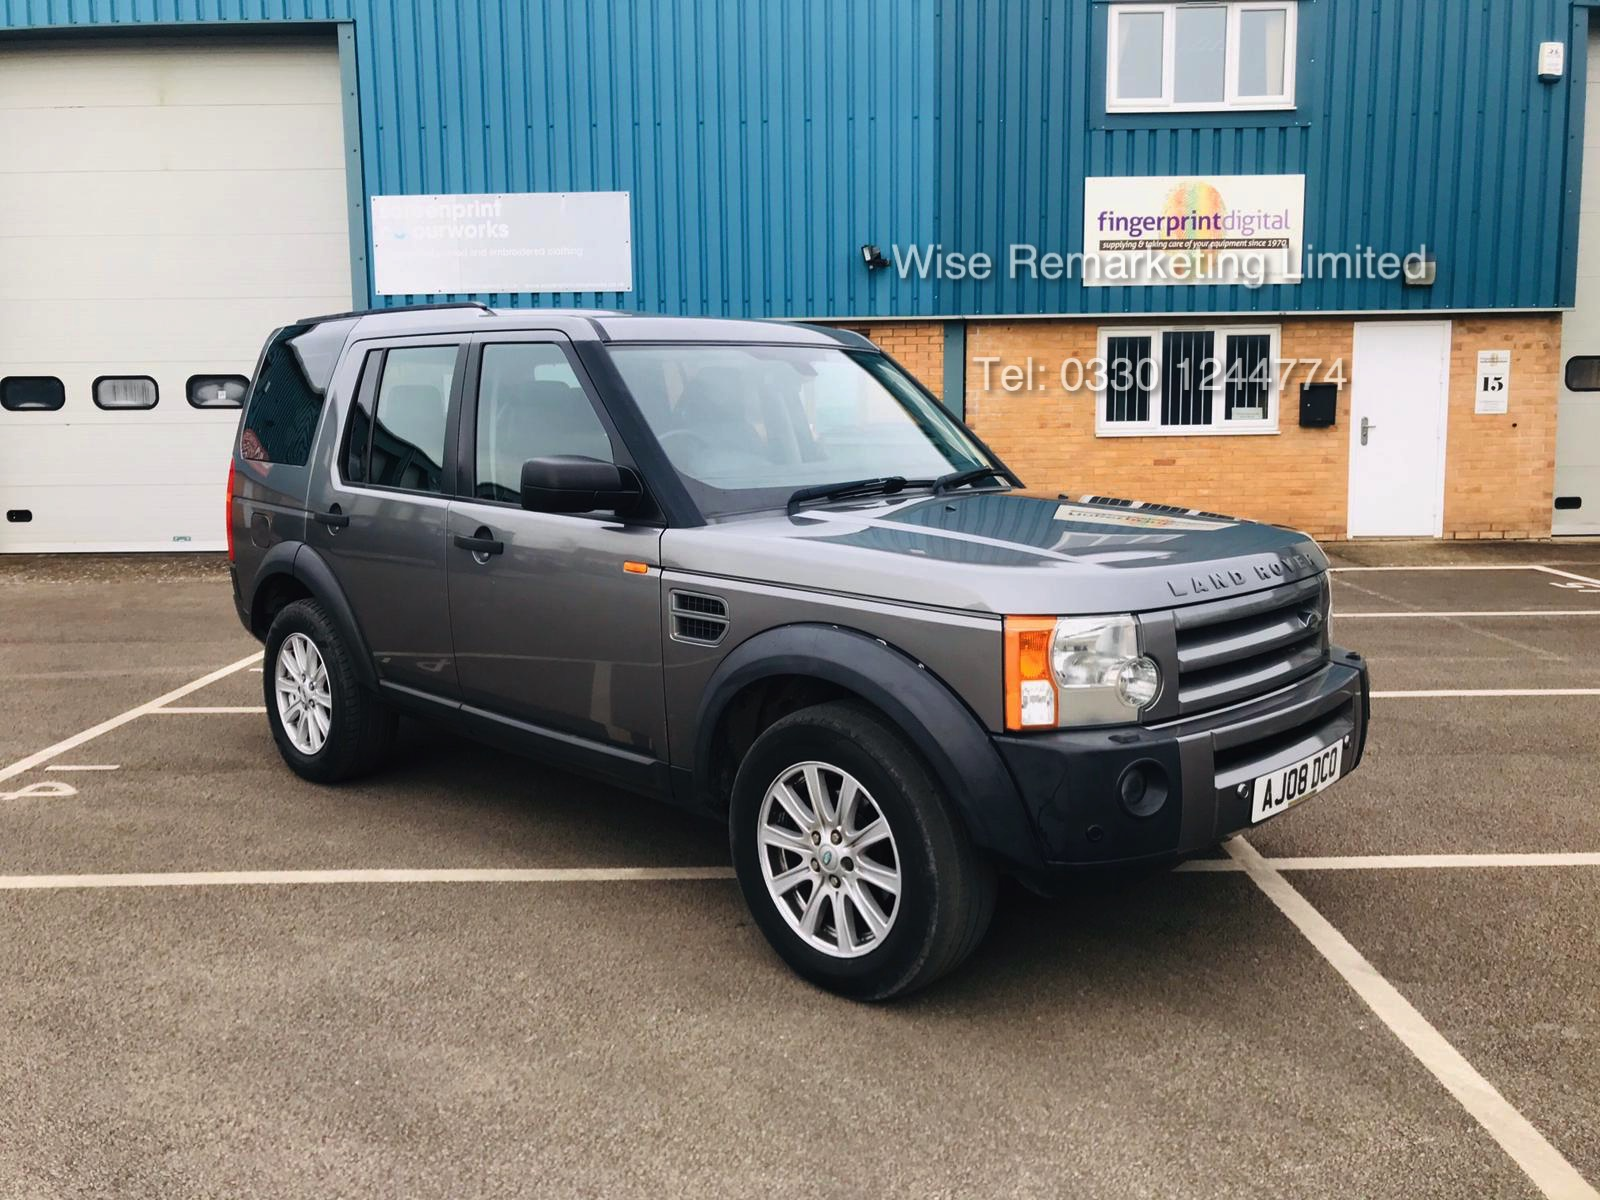 Land Rover Discovery SE 2.7 TDV6 Automatic - 2008 08 Reg - 7 seats - 1 Keeper - Service History - Image 2 of 22